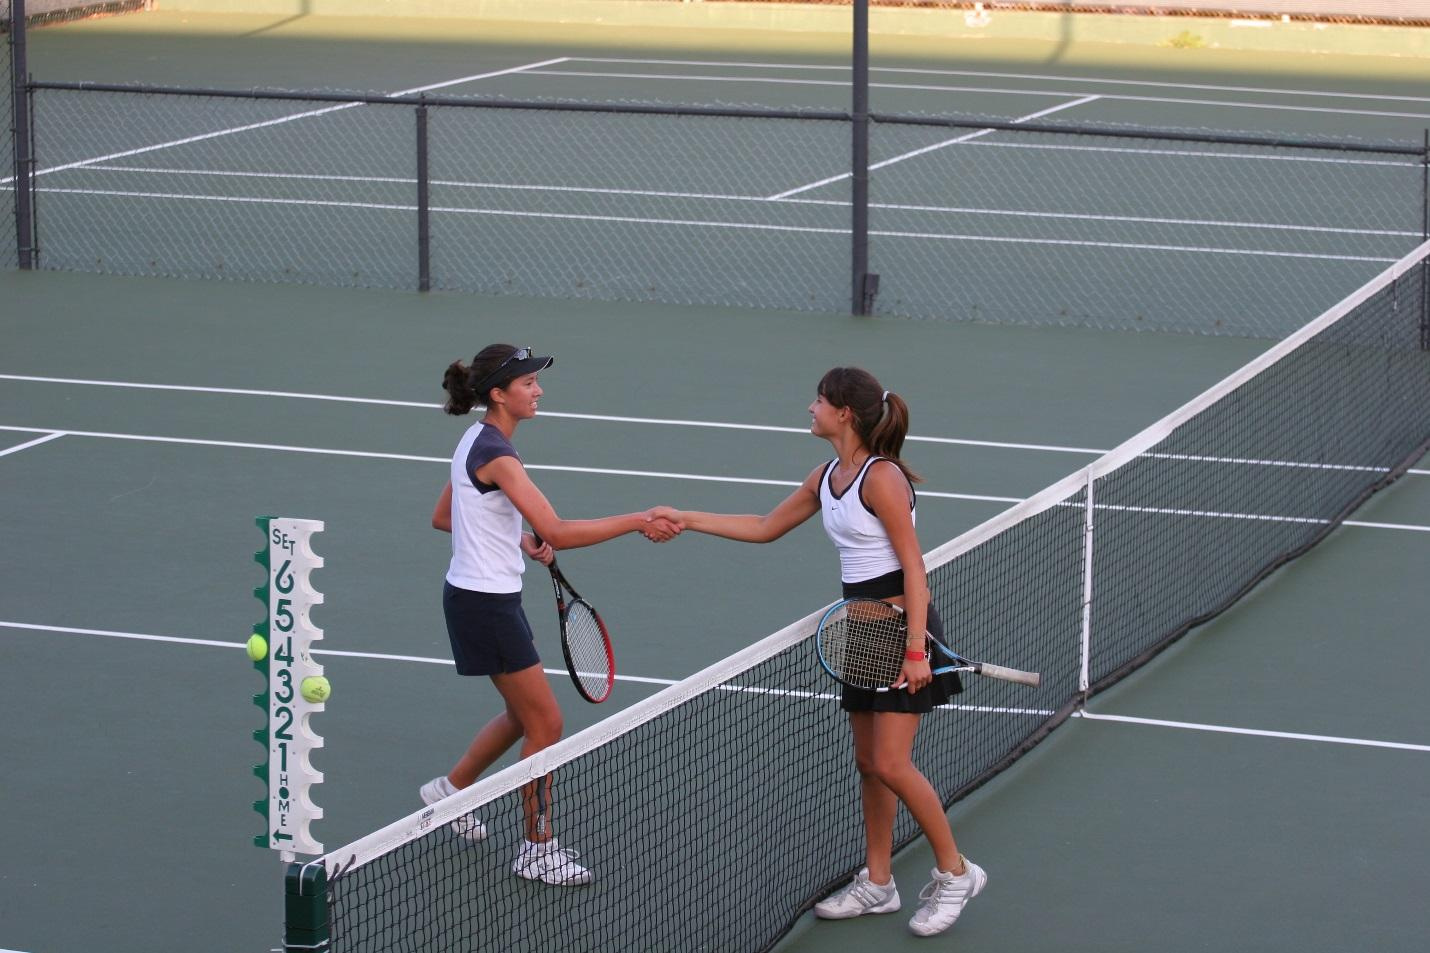 https://upload.wikimedia.org/wikipedia/commons/d/d9/Tennis_shake_hands_after_match.jpg